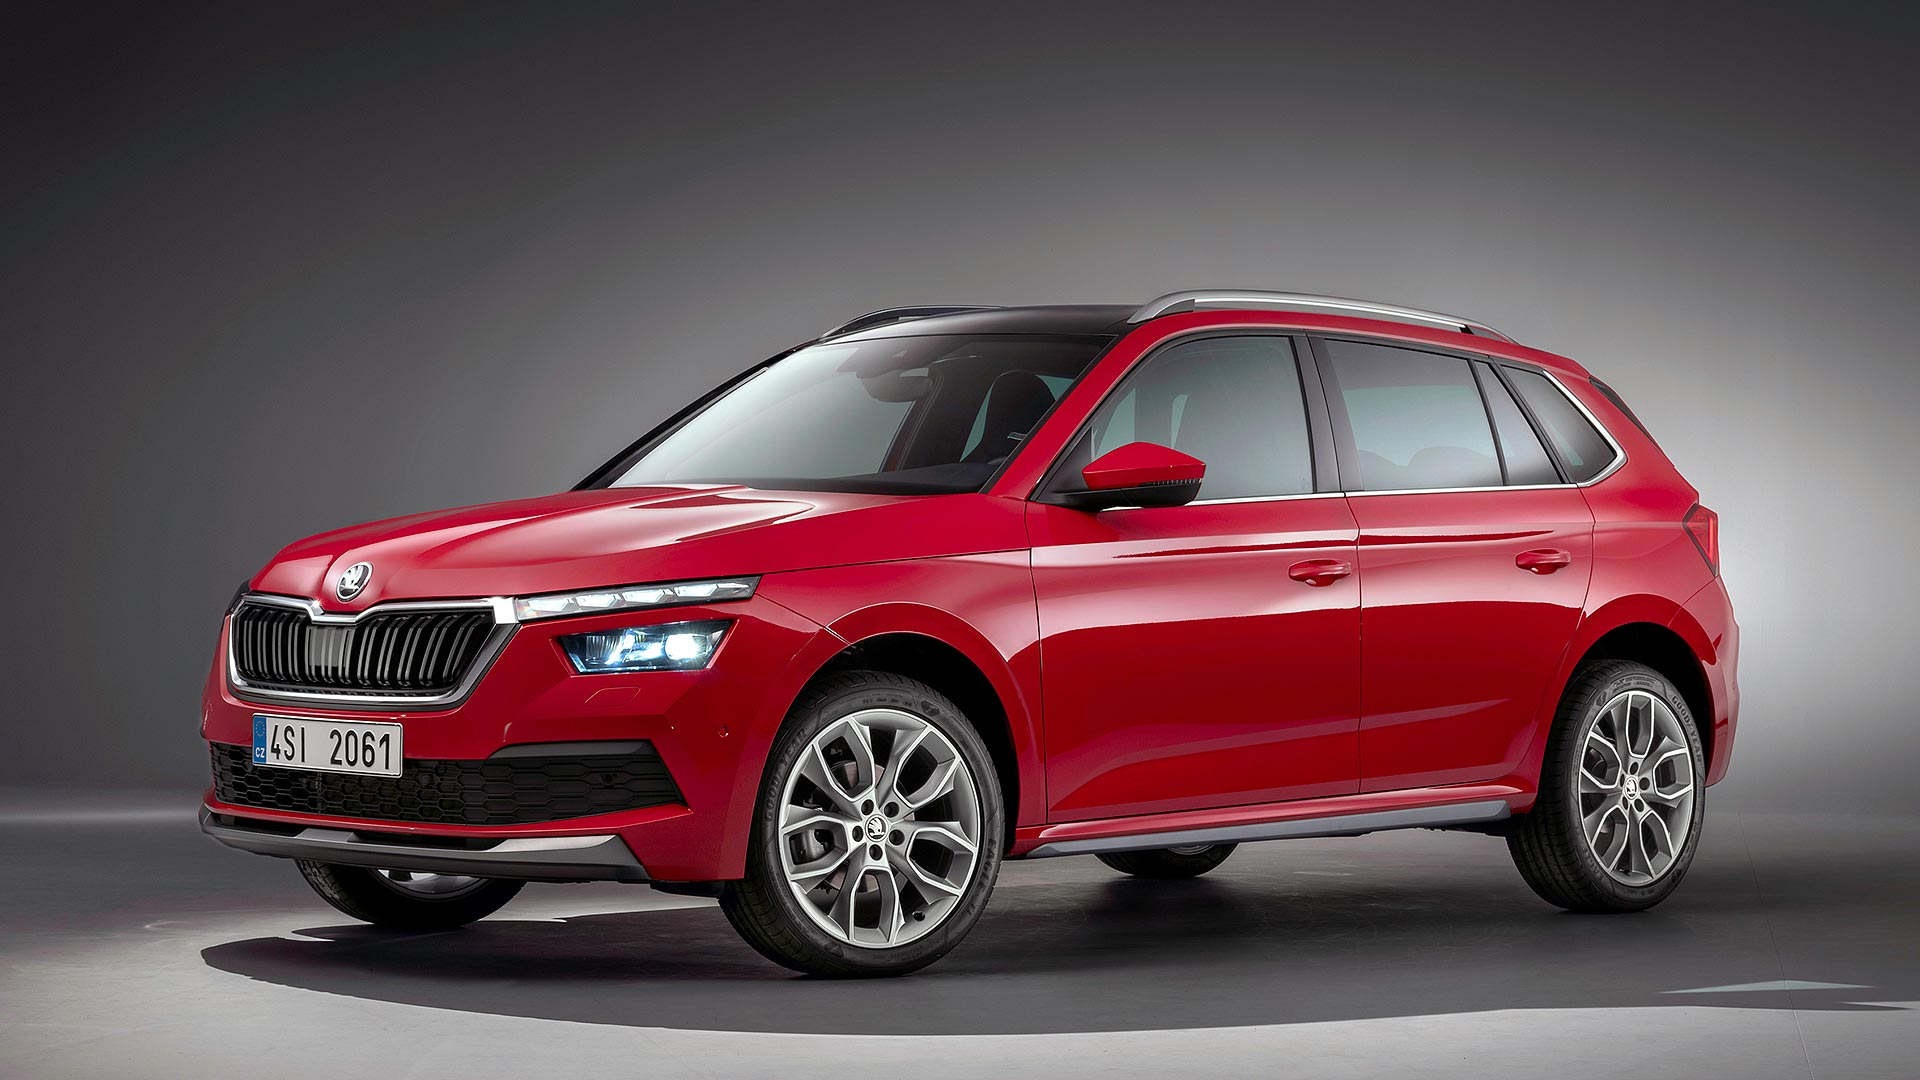 New Skoda Kamiq Revealed: Baby SUV To Take On Big-selling